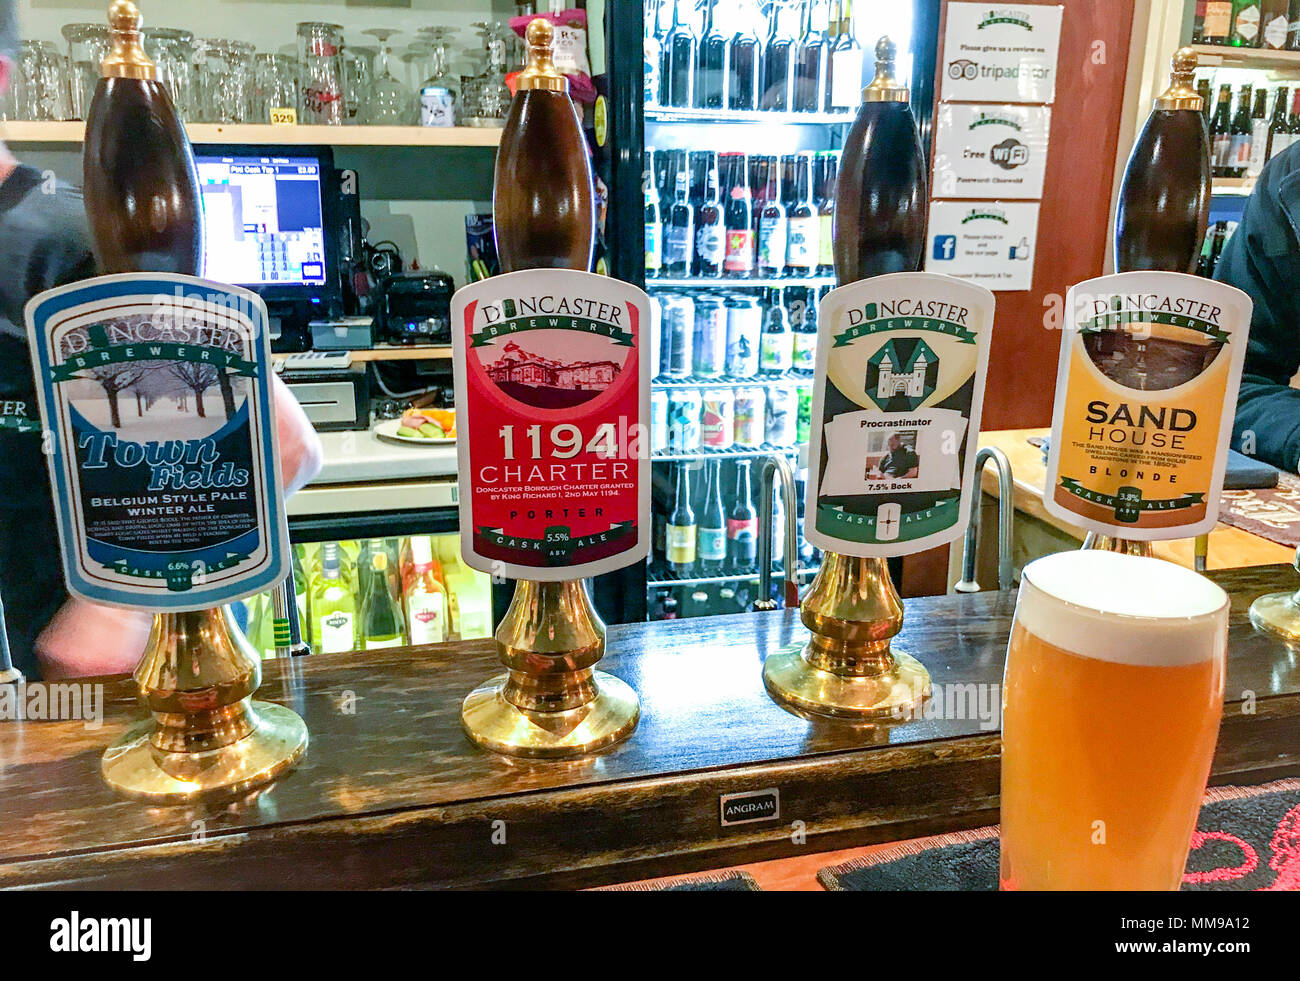 Doncaster Brewery Beer pumps on a bar, in a traditional English pub, South Yorkshire, England, UK - Stock Image